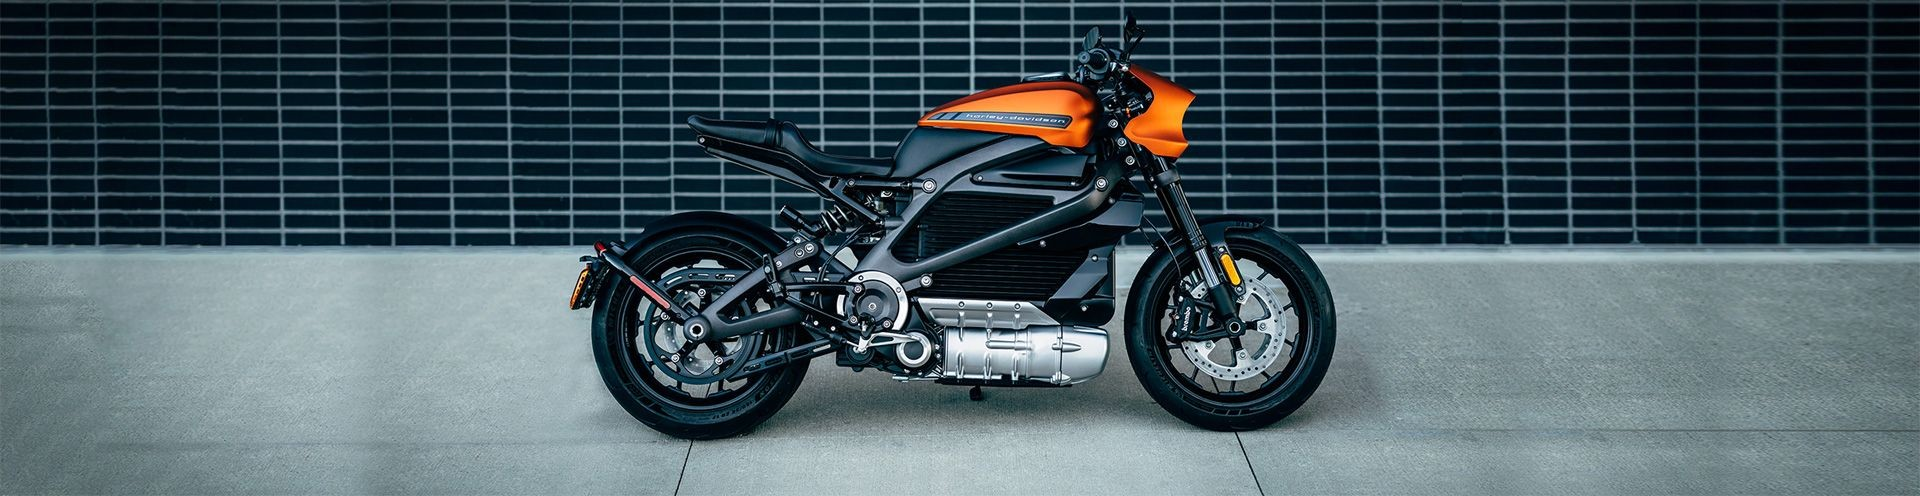 2020 Harley-Davidson® LiveWire™ at Thunder Tower West Harley-Davidson®